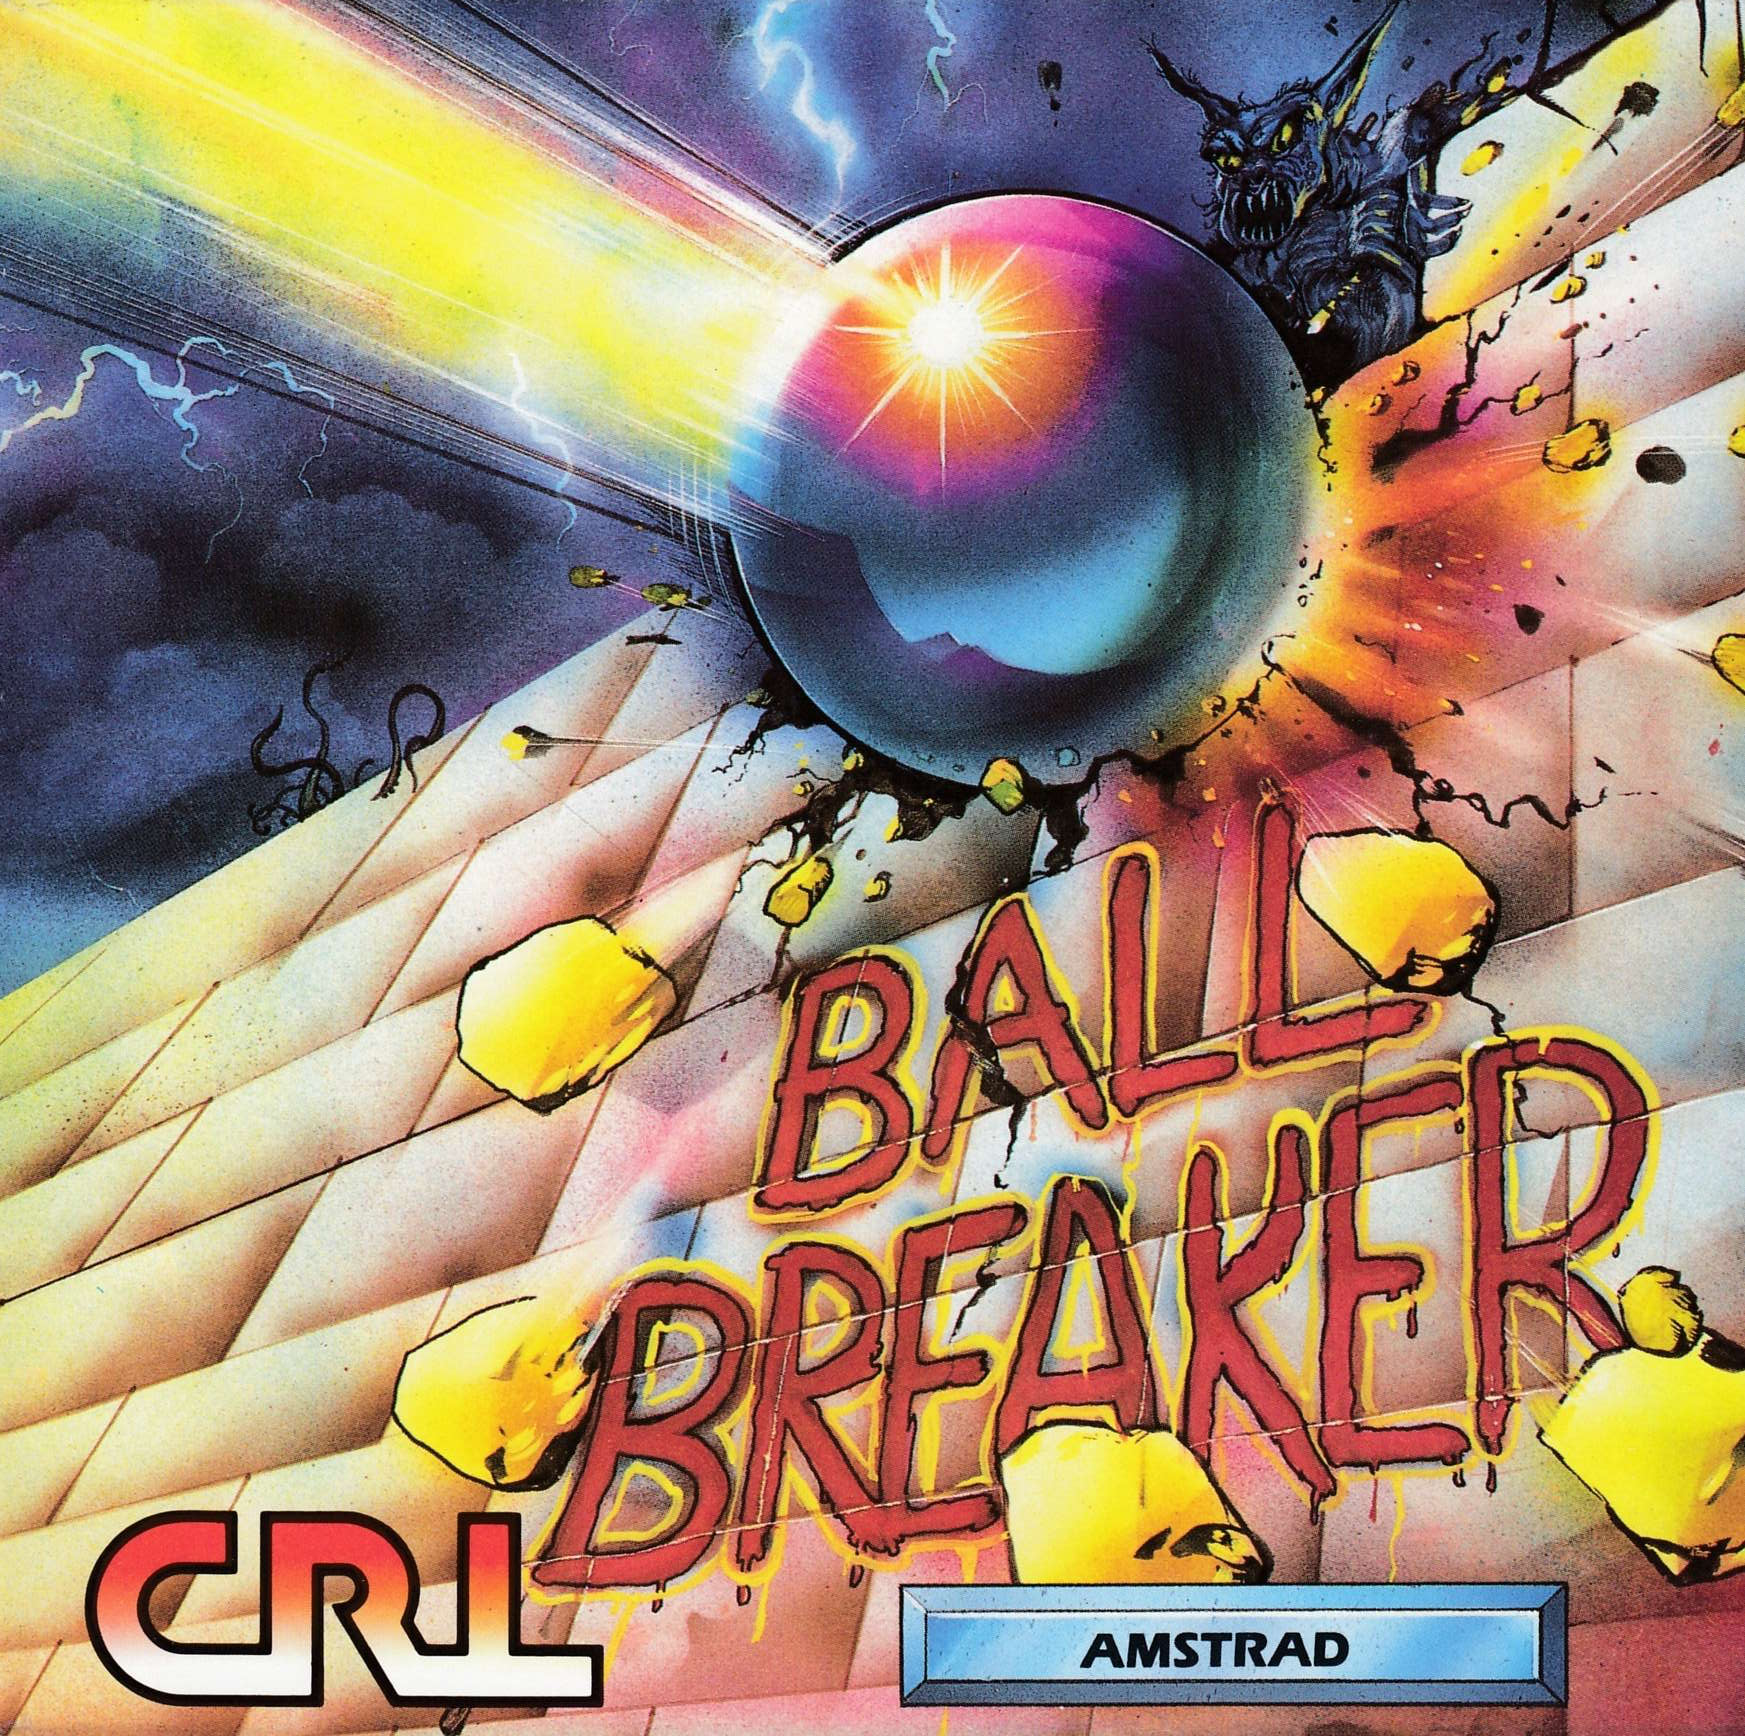 cover of the Amstrad CPC game Ball Breaker  by GameBase CPC